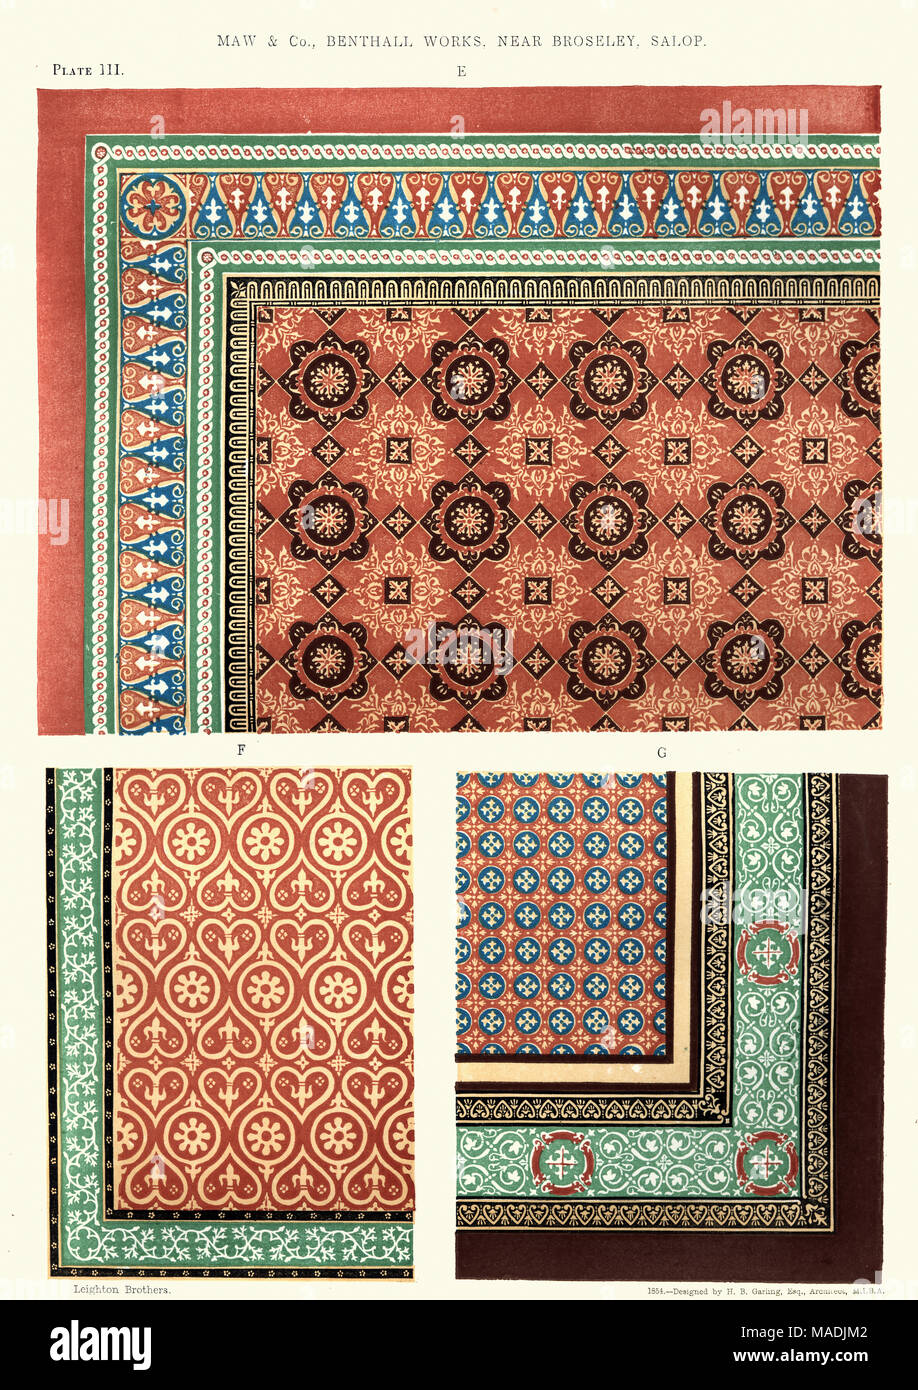 https www alamy com vintage engraving of a victorian encaustic floor tile pattern 1855 by maw and co benthall works encaustic tiles are ceramic tiles in which the pat image178550290 html